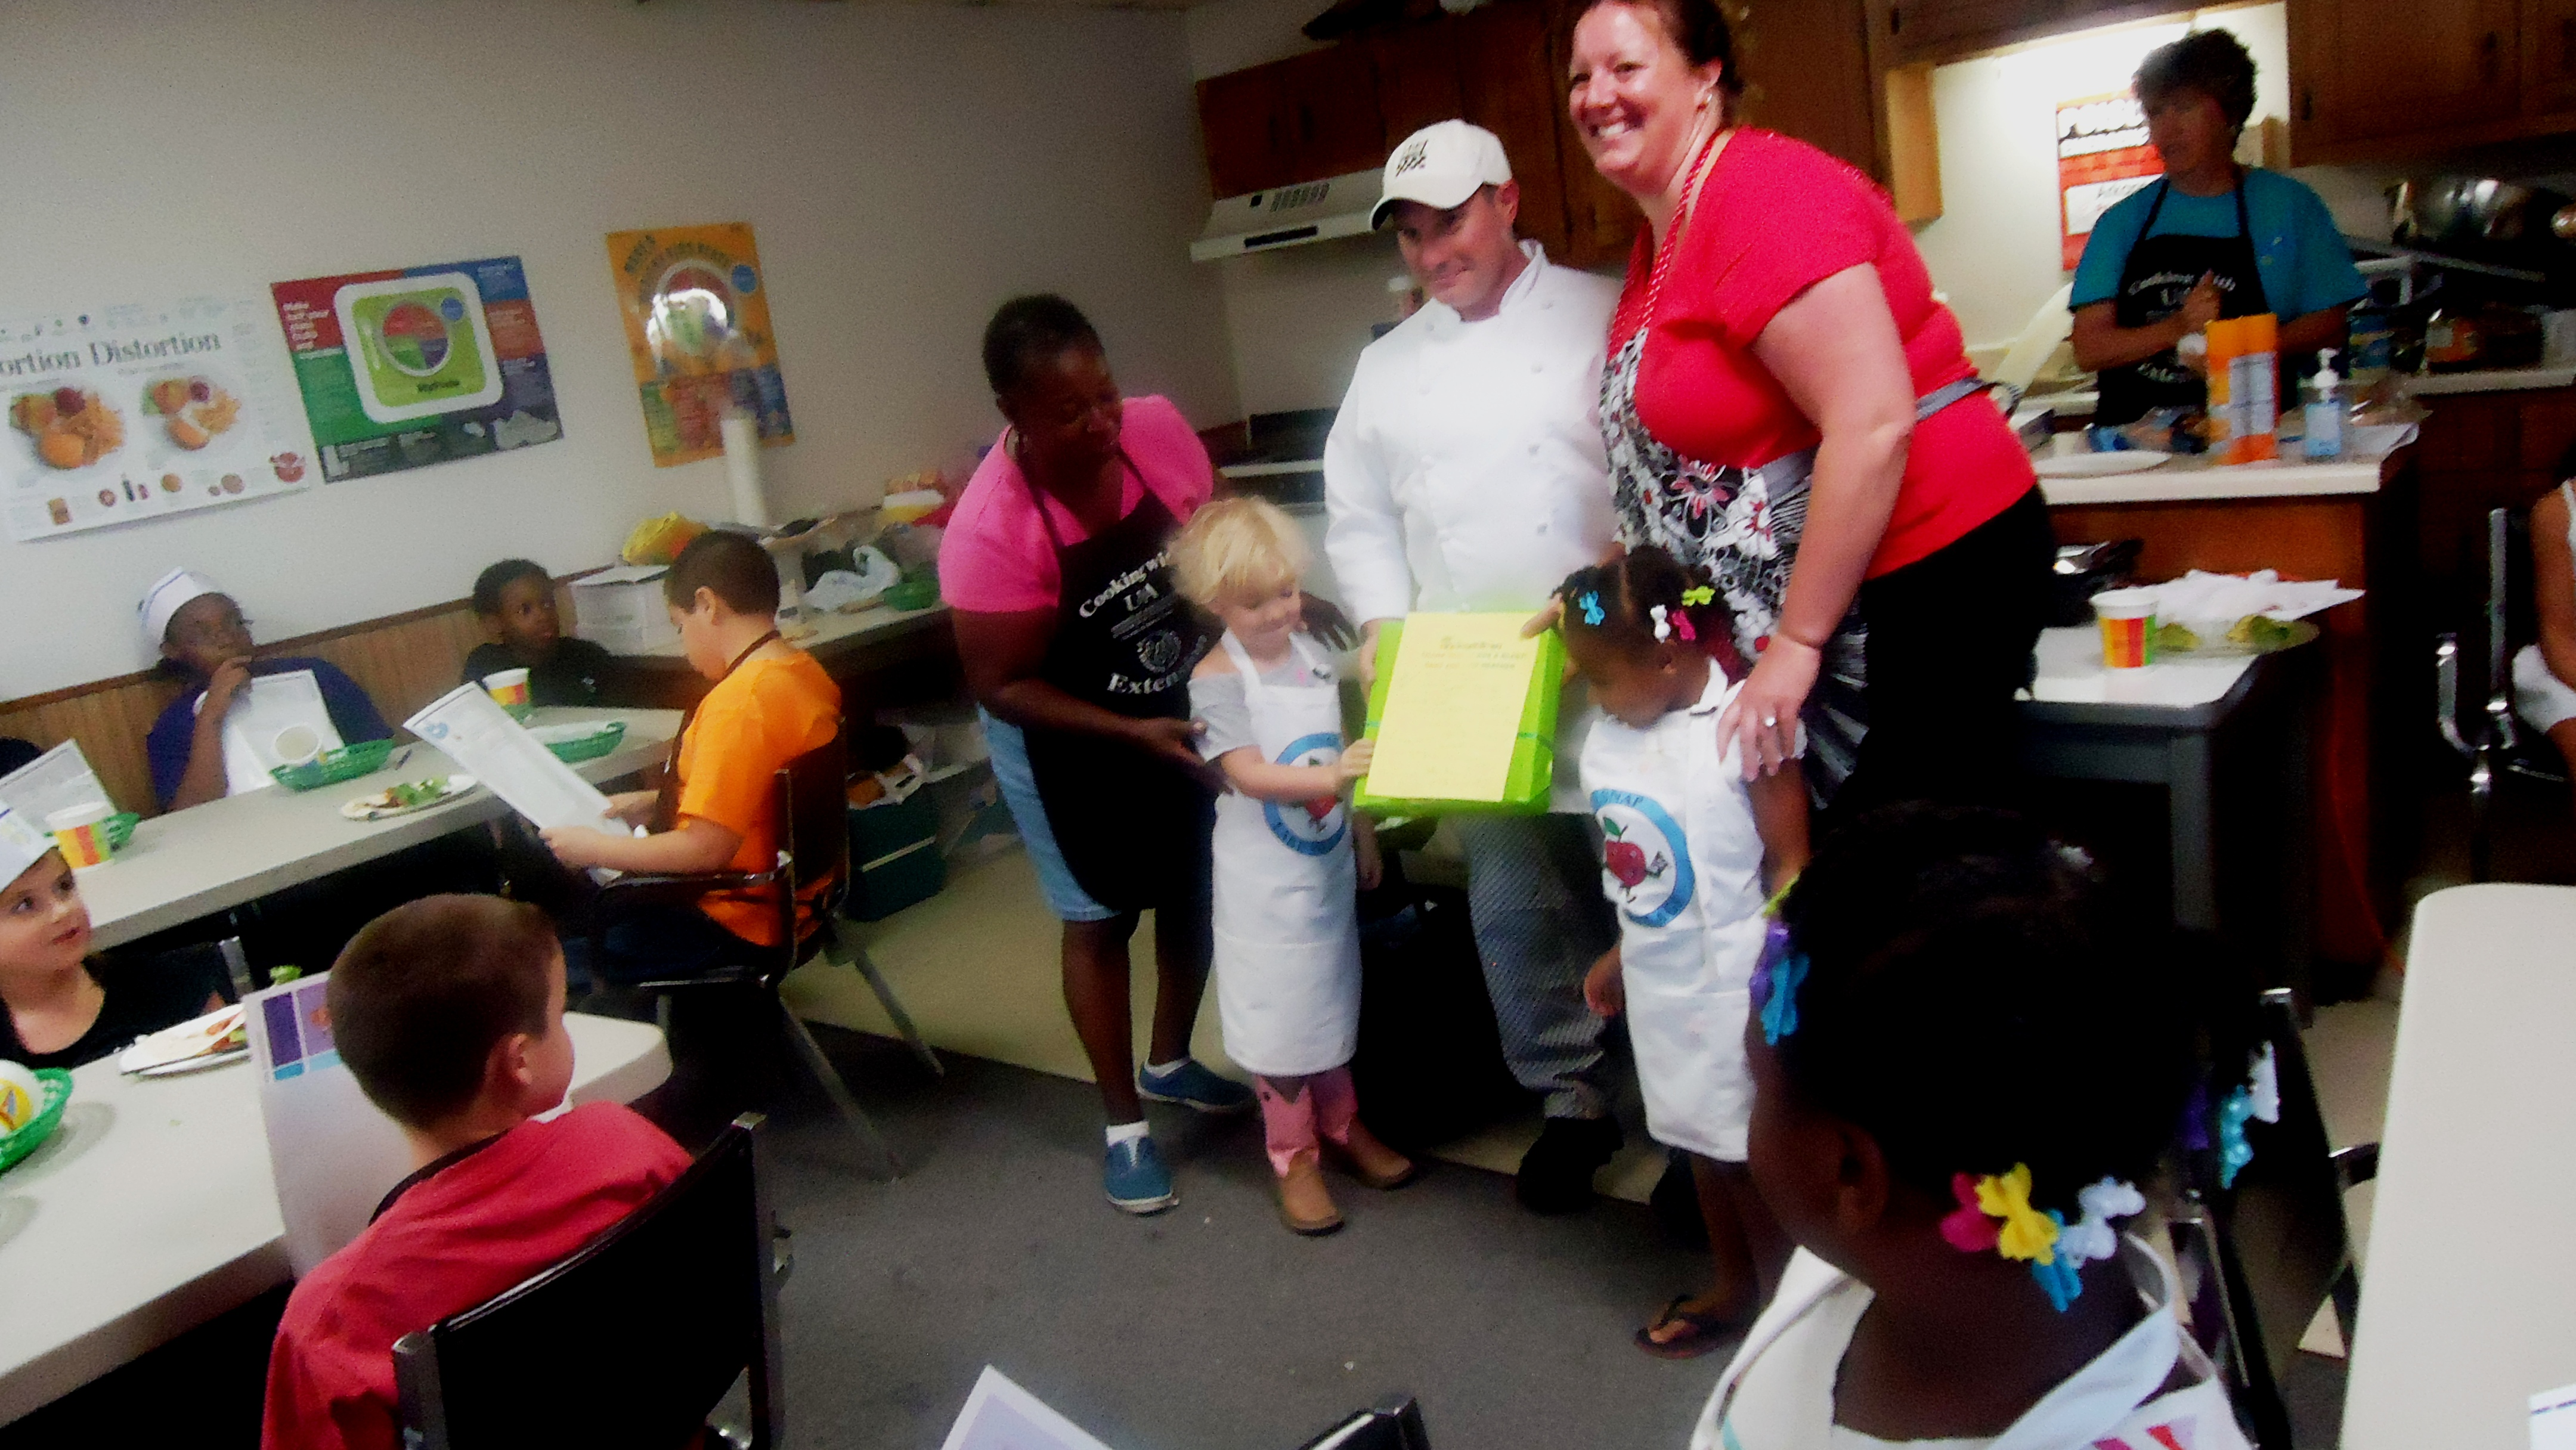 Picture of Chefs, Andy Gibson and Heather Gibson working with 4-H youth.